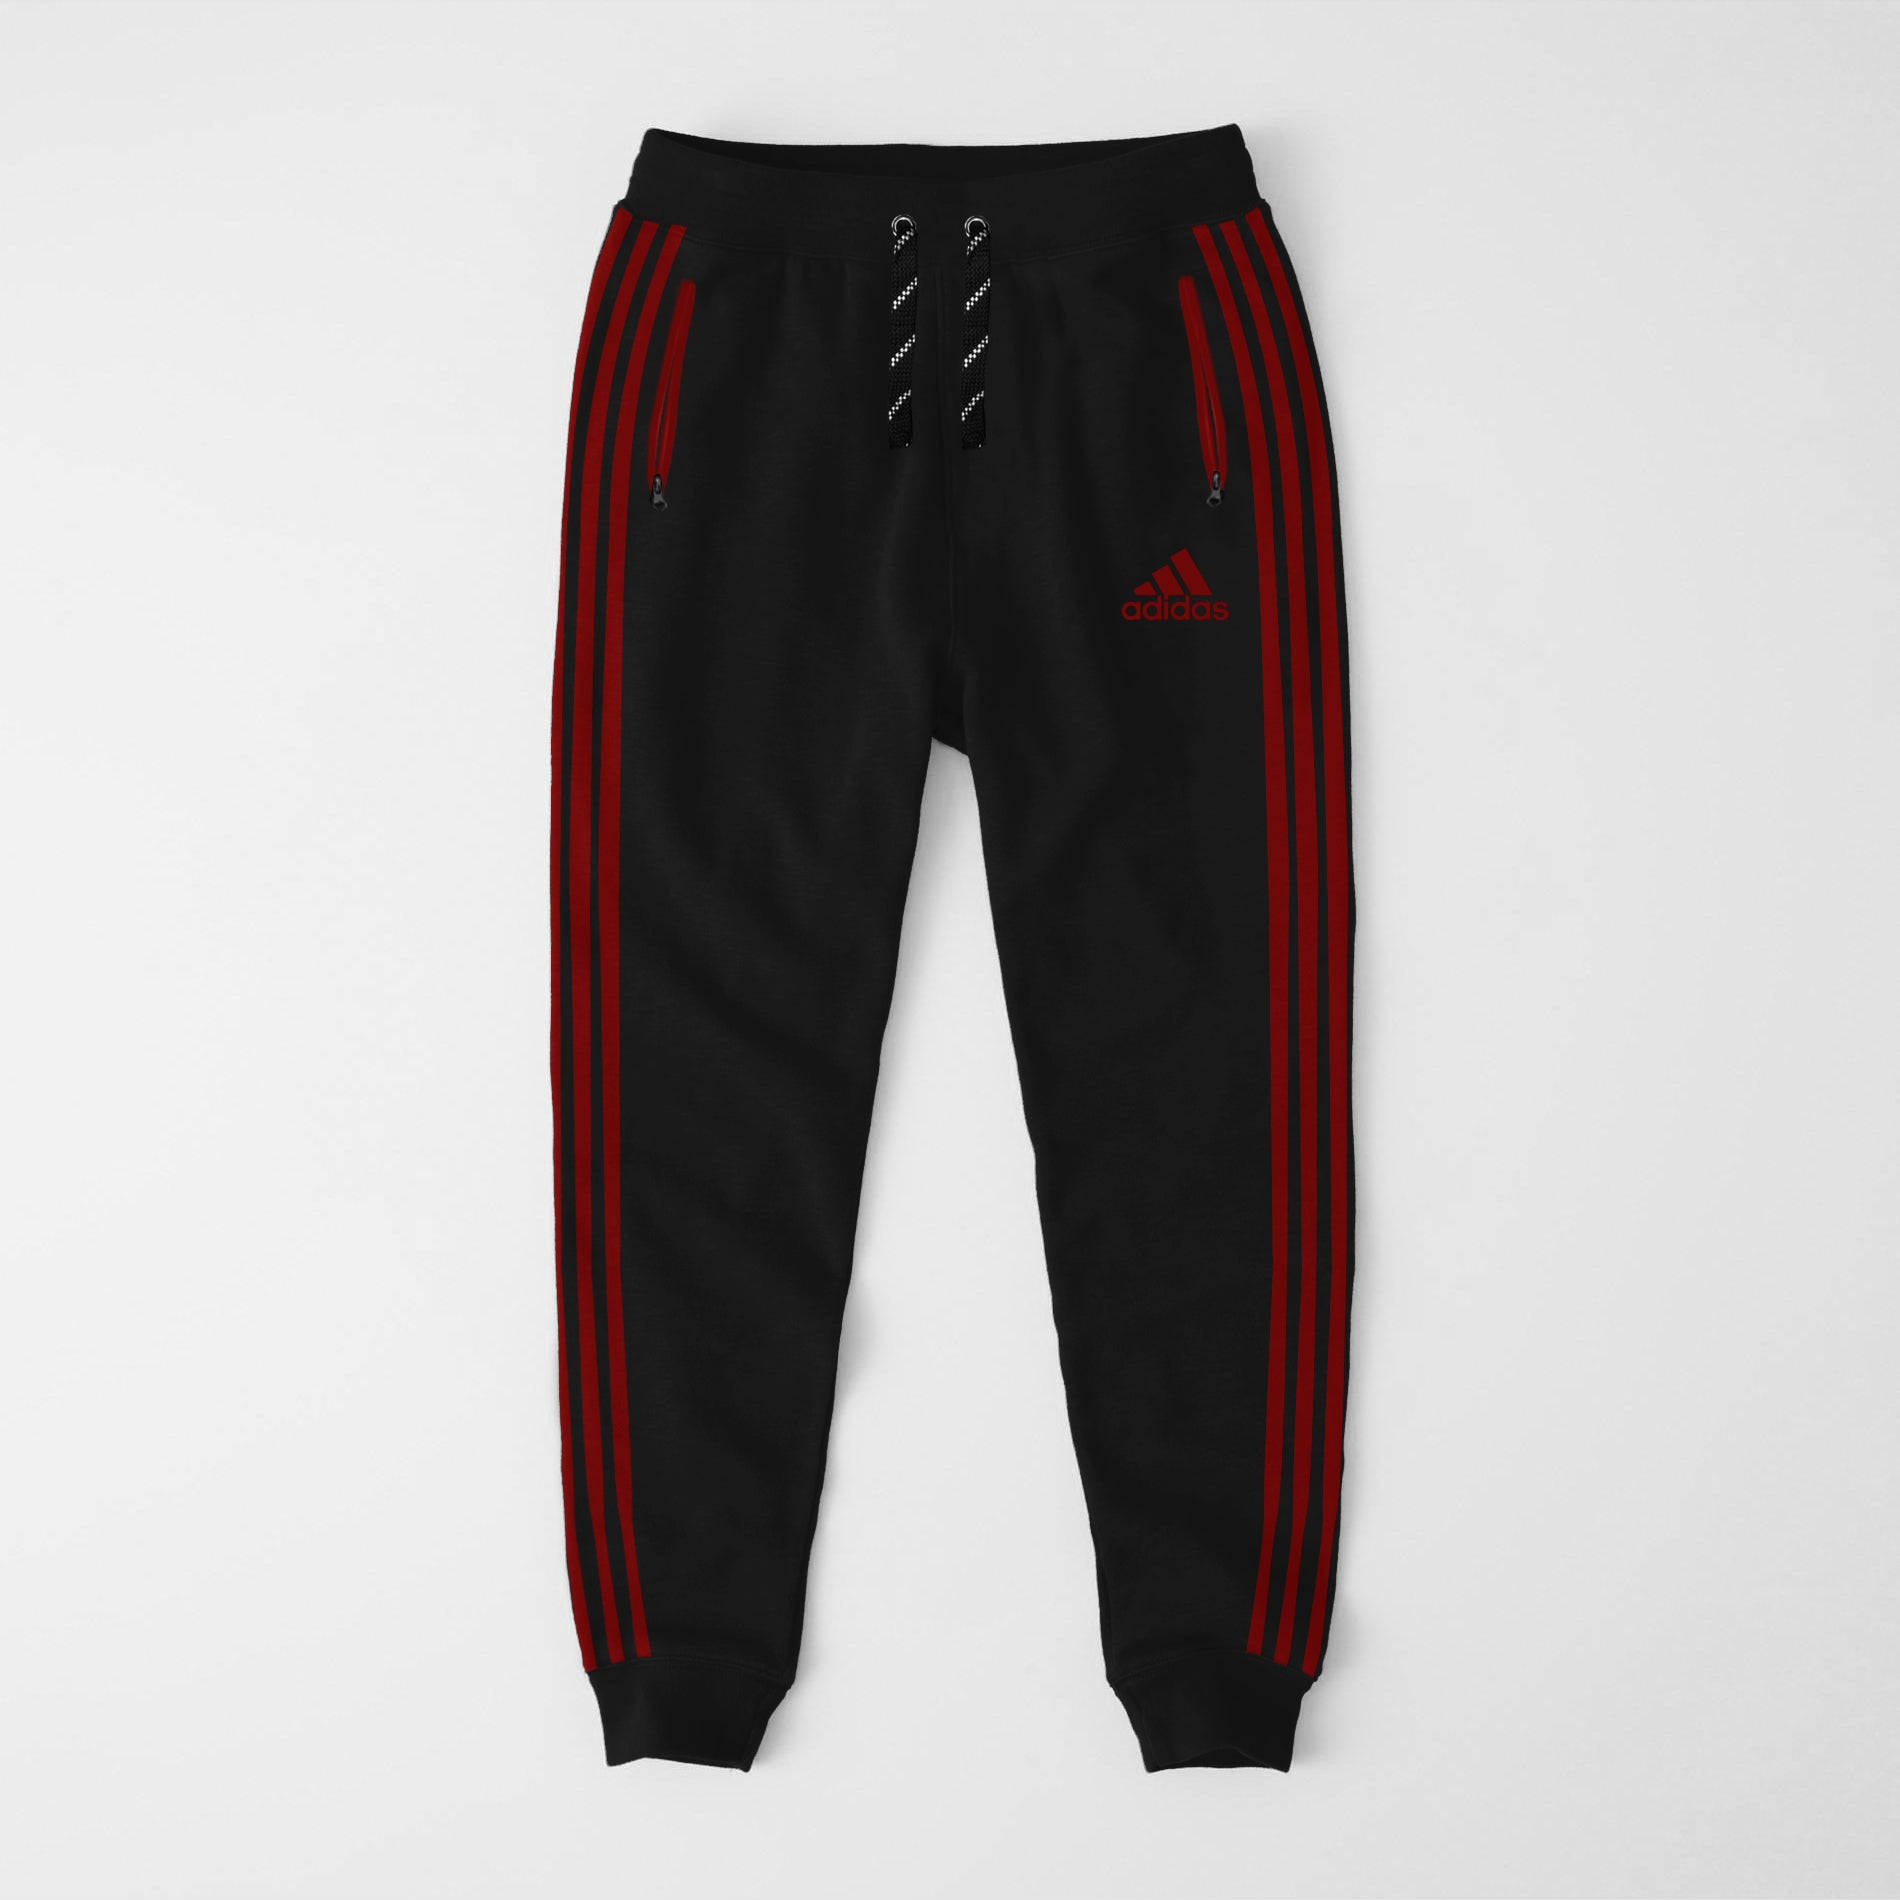 Adidas Single Jersey Slim Fit Jogger Trouser For Men-Black With Red Stripes-NA8247